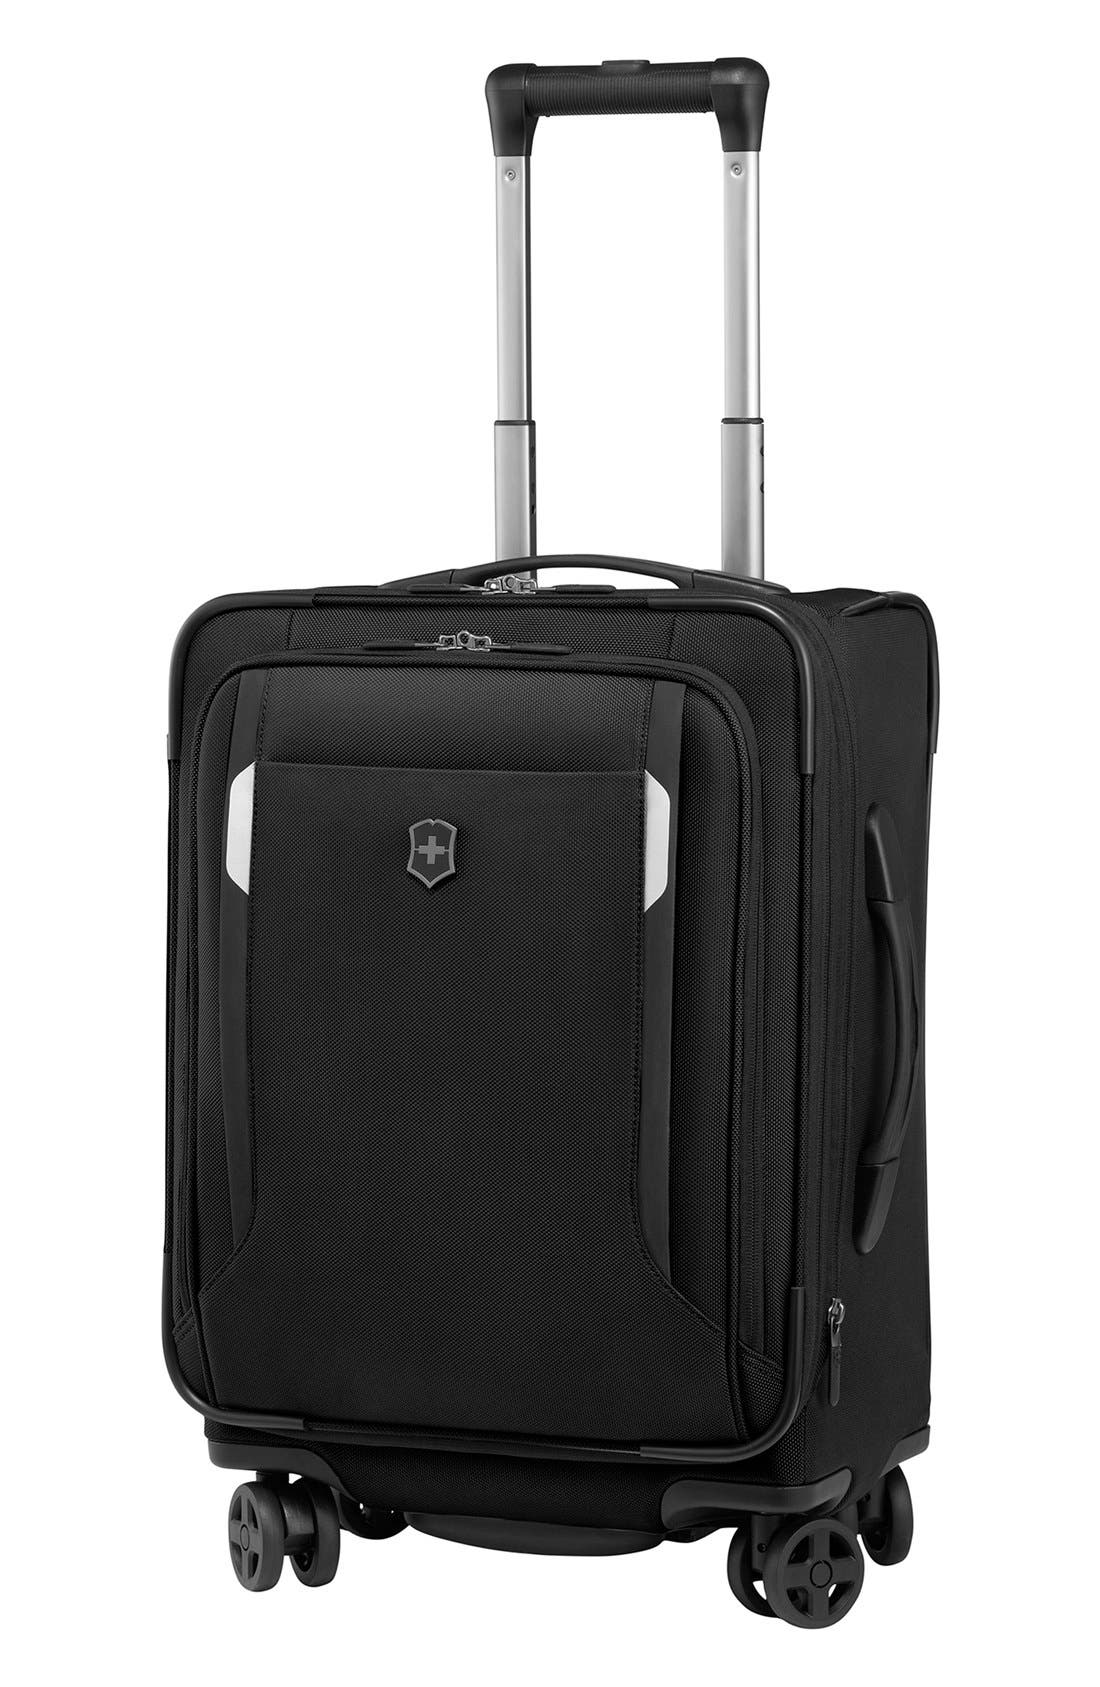 WT 5.0 Dual Caster Wheeled 20-Inch Carry-On,                             Main thumbnail 1, color,                             Black